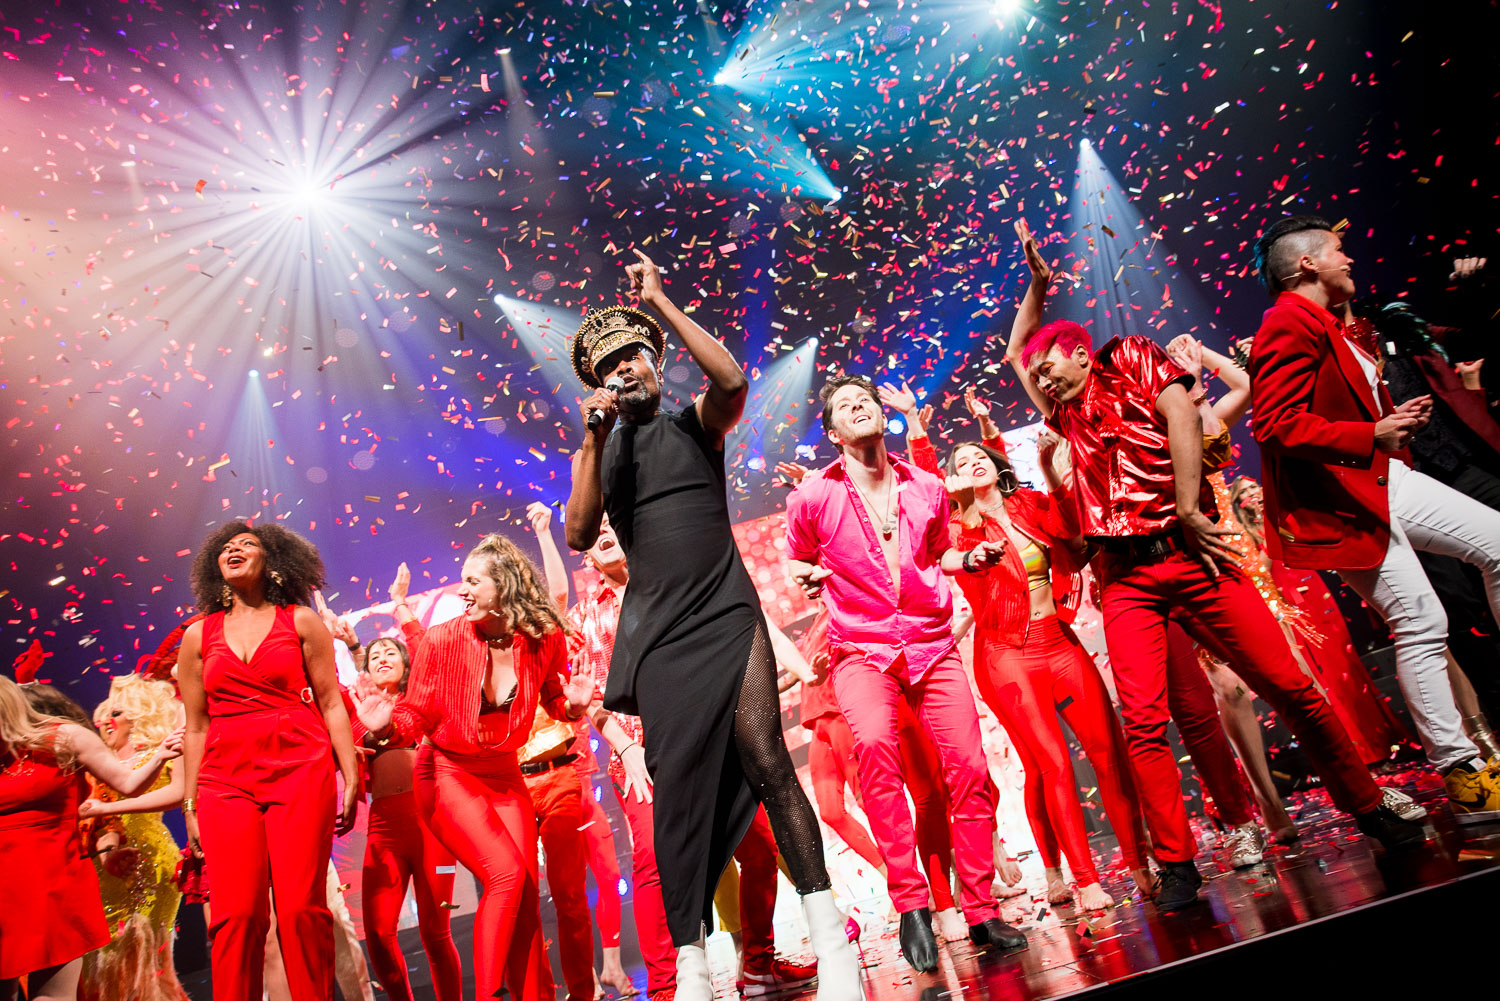 Billy Porter performing on stage during the 2019 Allies Gala alongside community performers